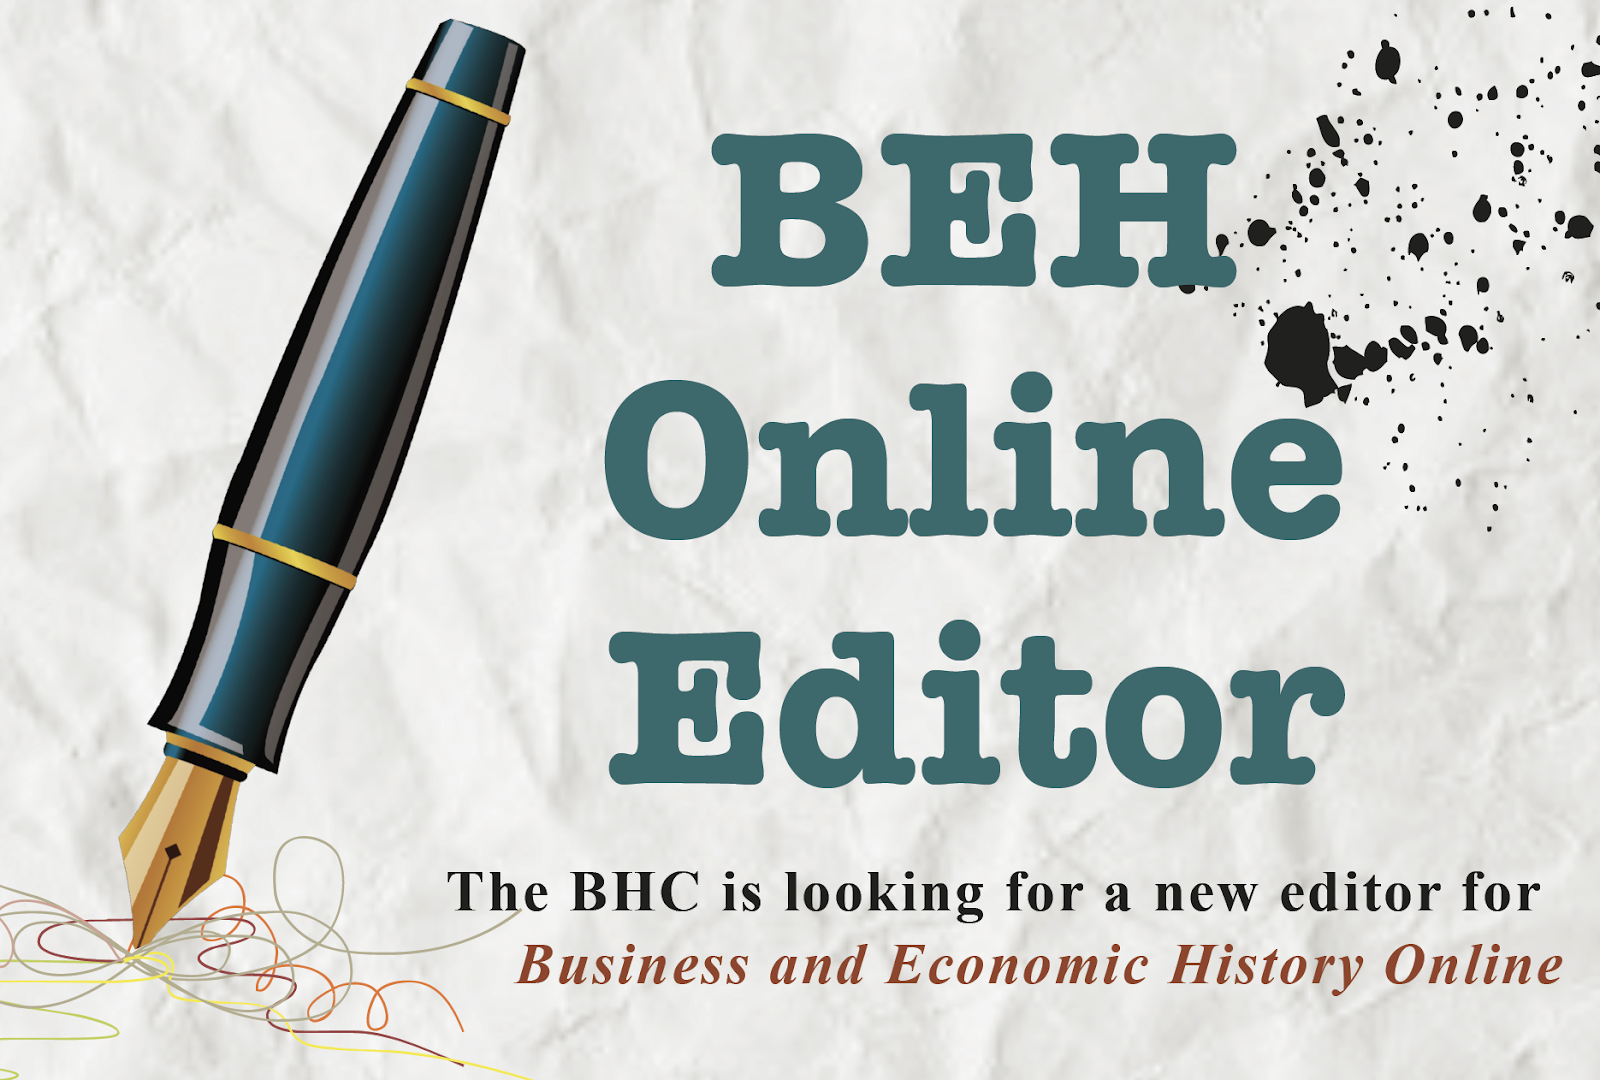 Calligraphy Photo Editor Online New Position At The Bhc Editor Of The Business And Economic